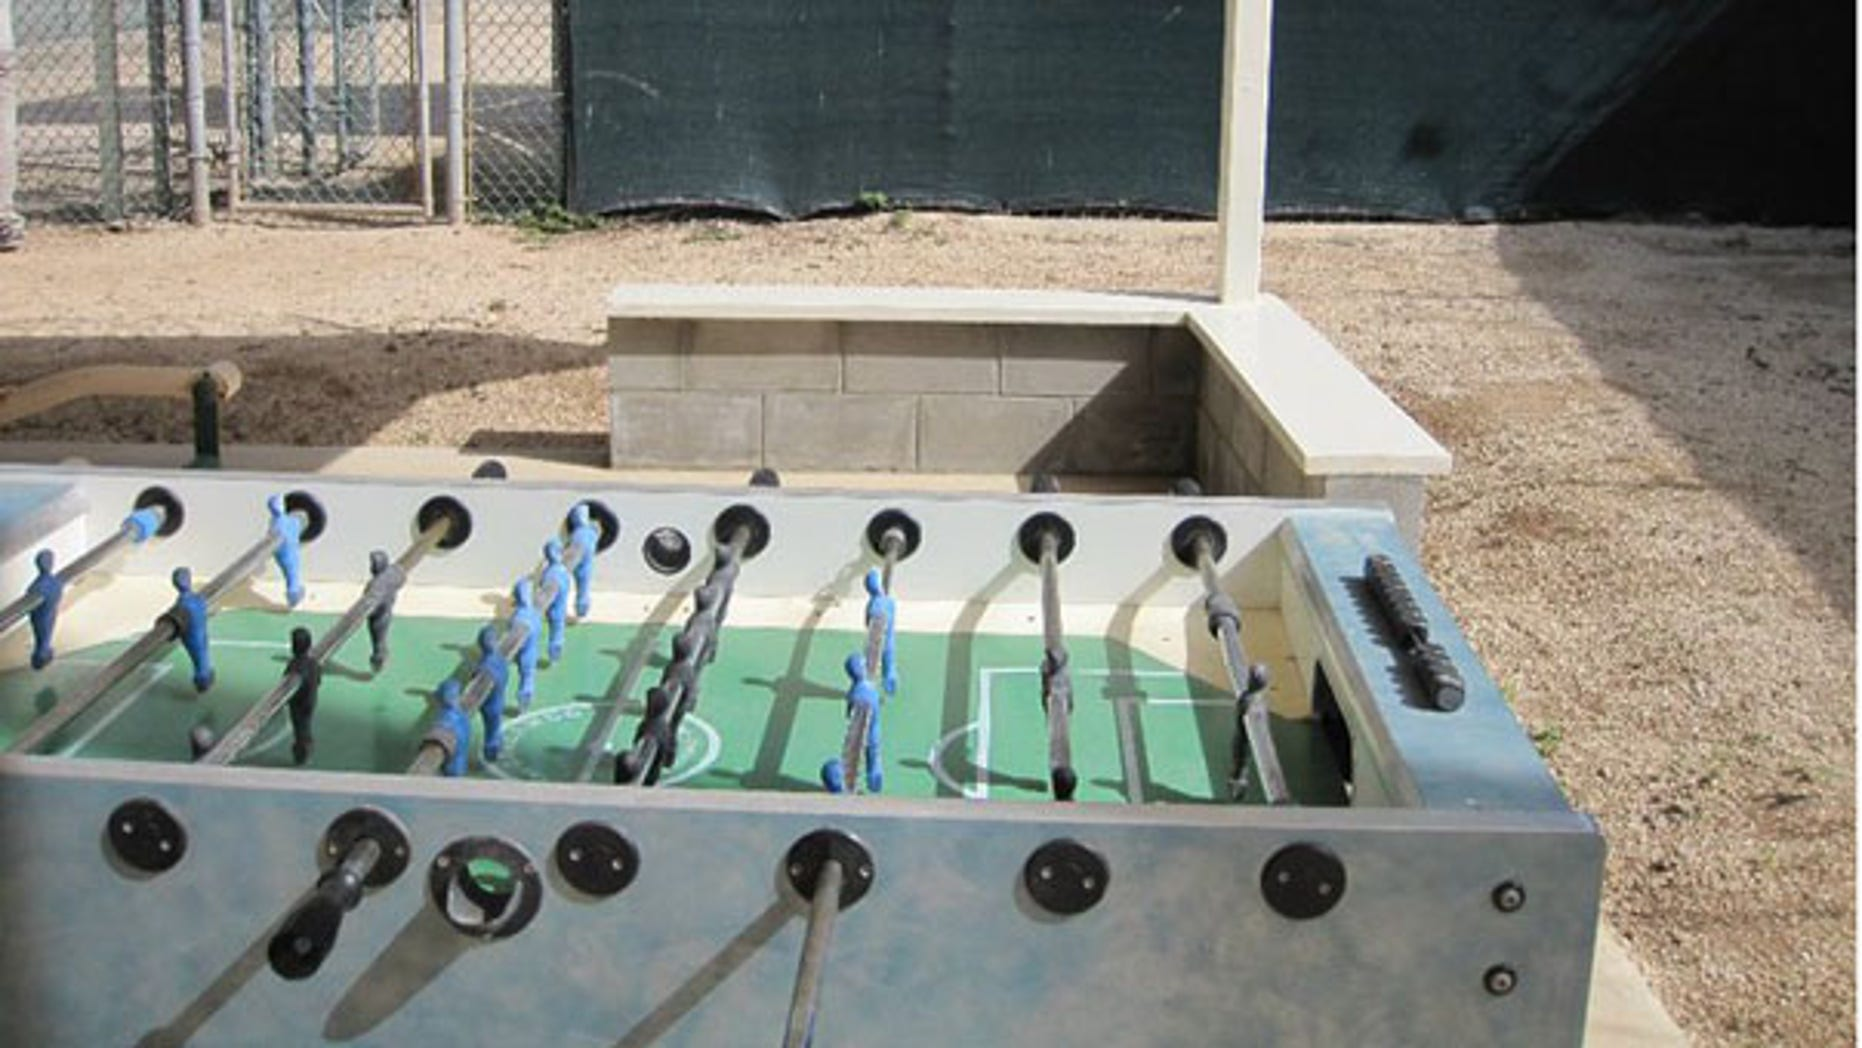 Detainees at Camp 4 in Guantanamo Bay can work off energy by playing foosball. (FNC)